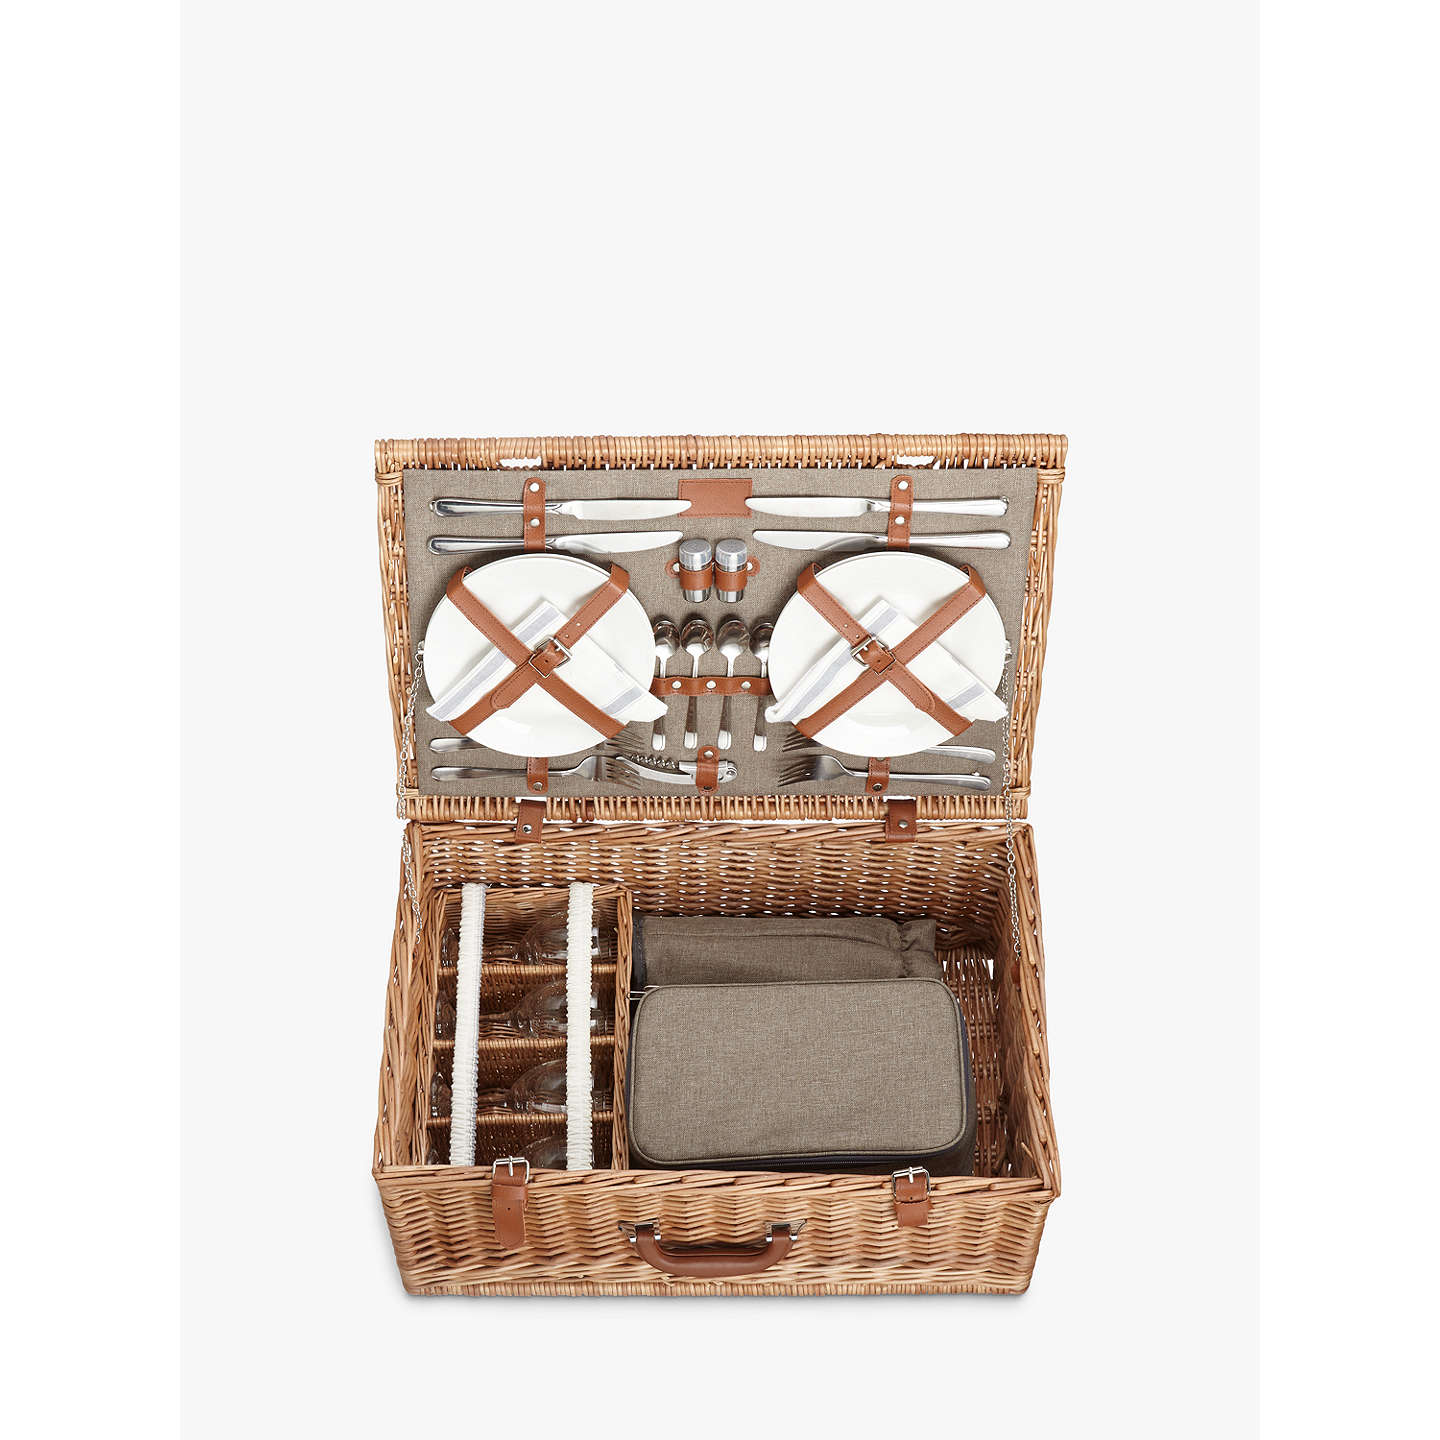 BuyCroft Collection 4 Person Luxury Wicker Picnic Hamper Online at johnlewis.com